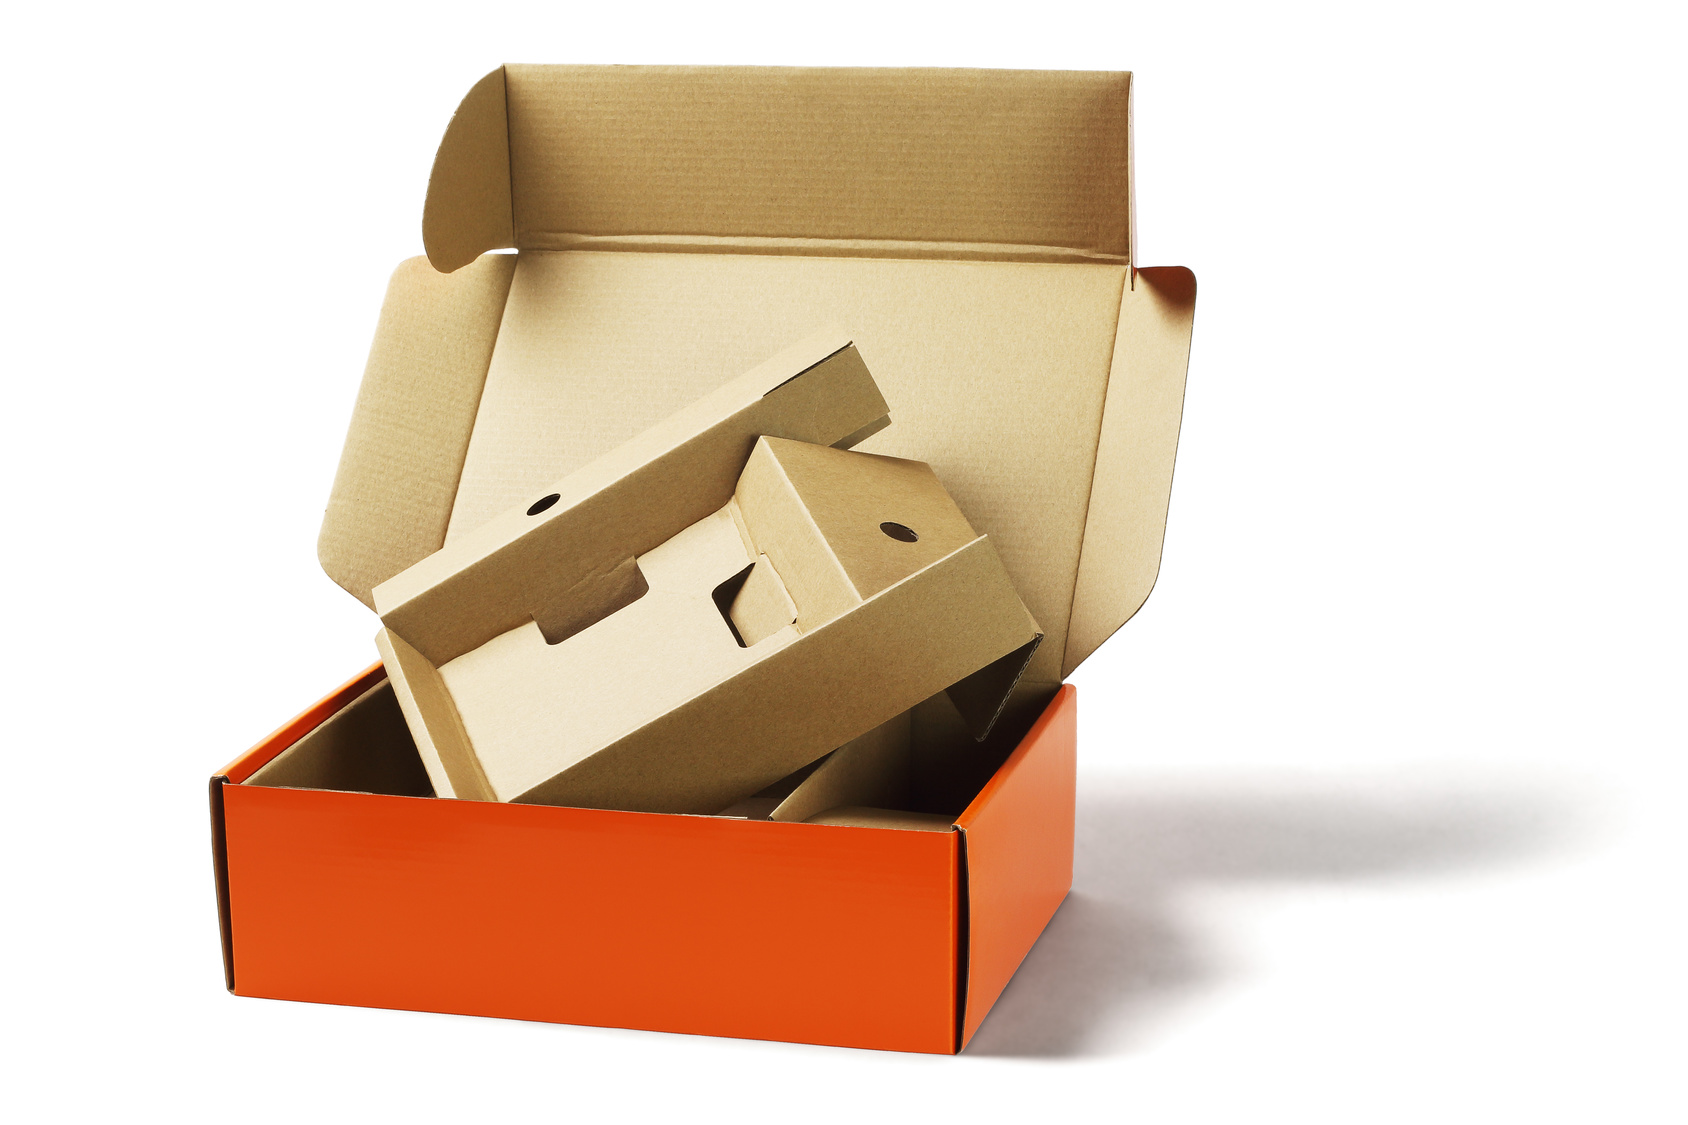 Custom printed boxes and die cut inserts inner corrugated packaging